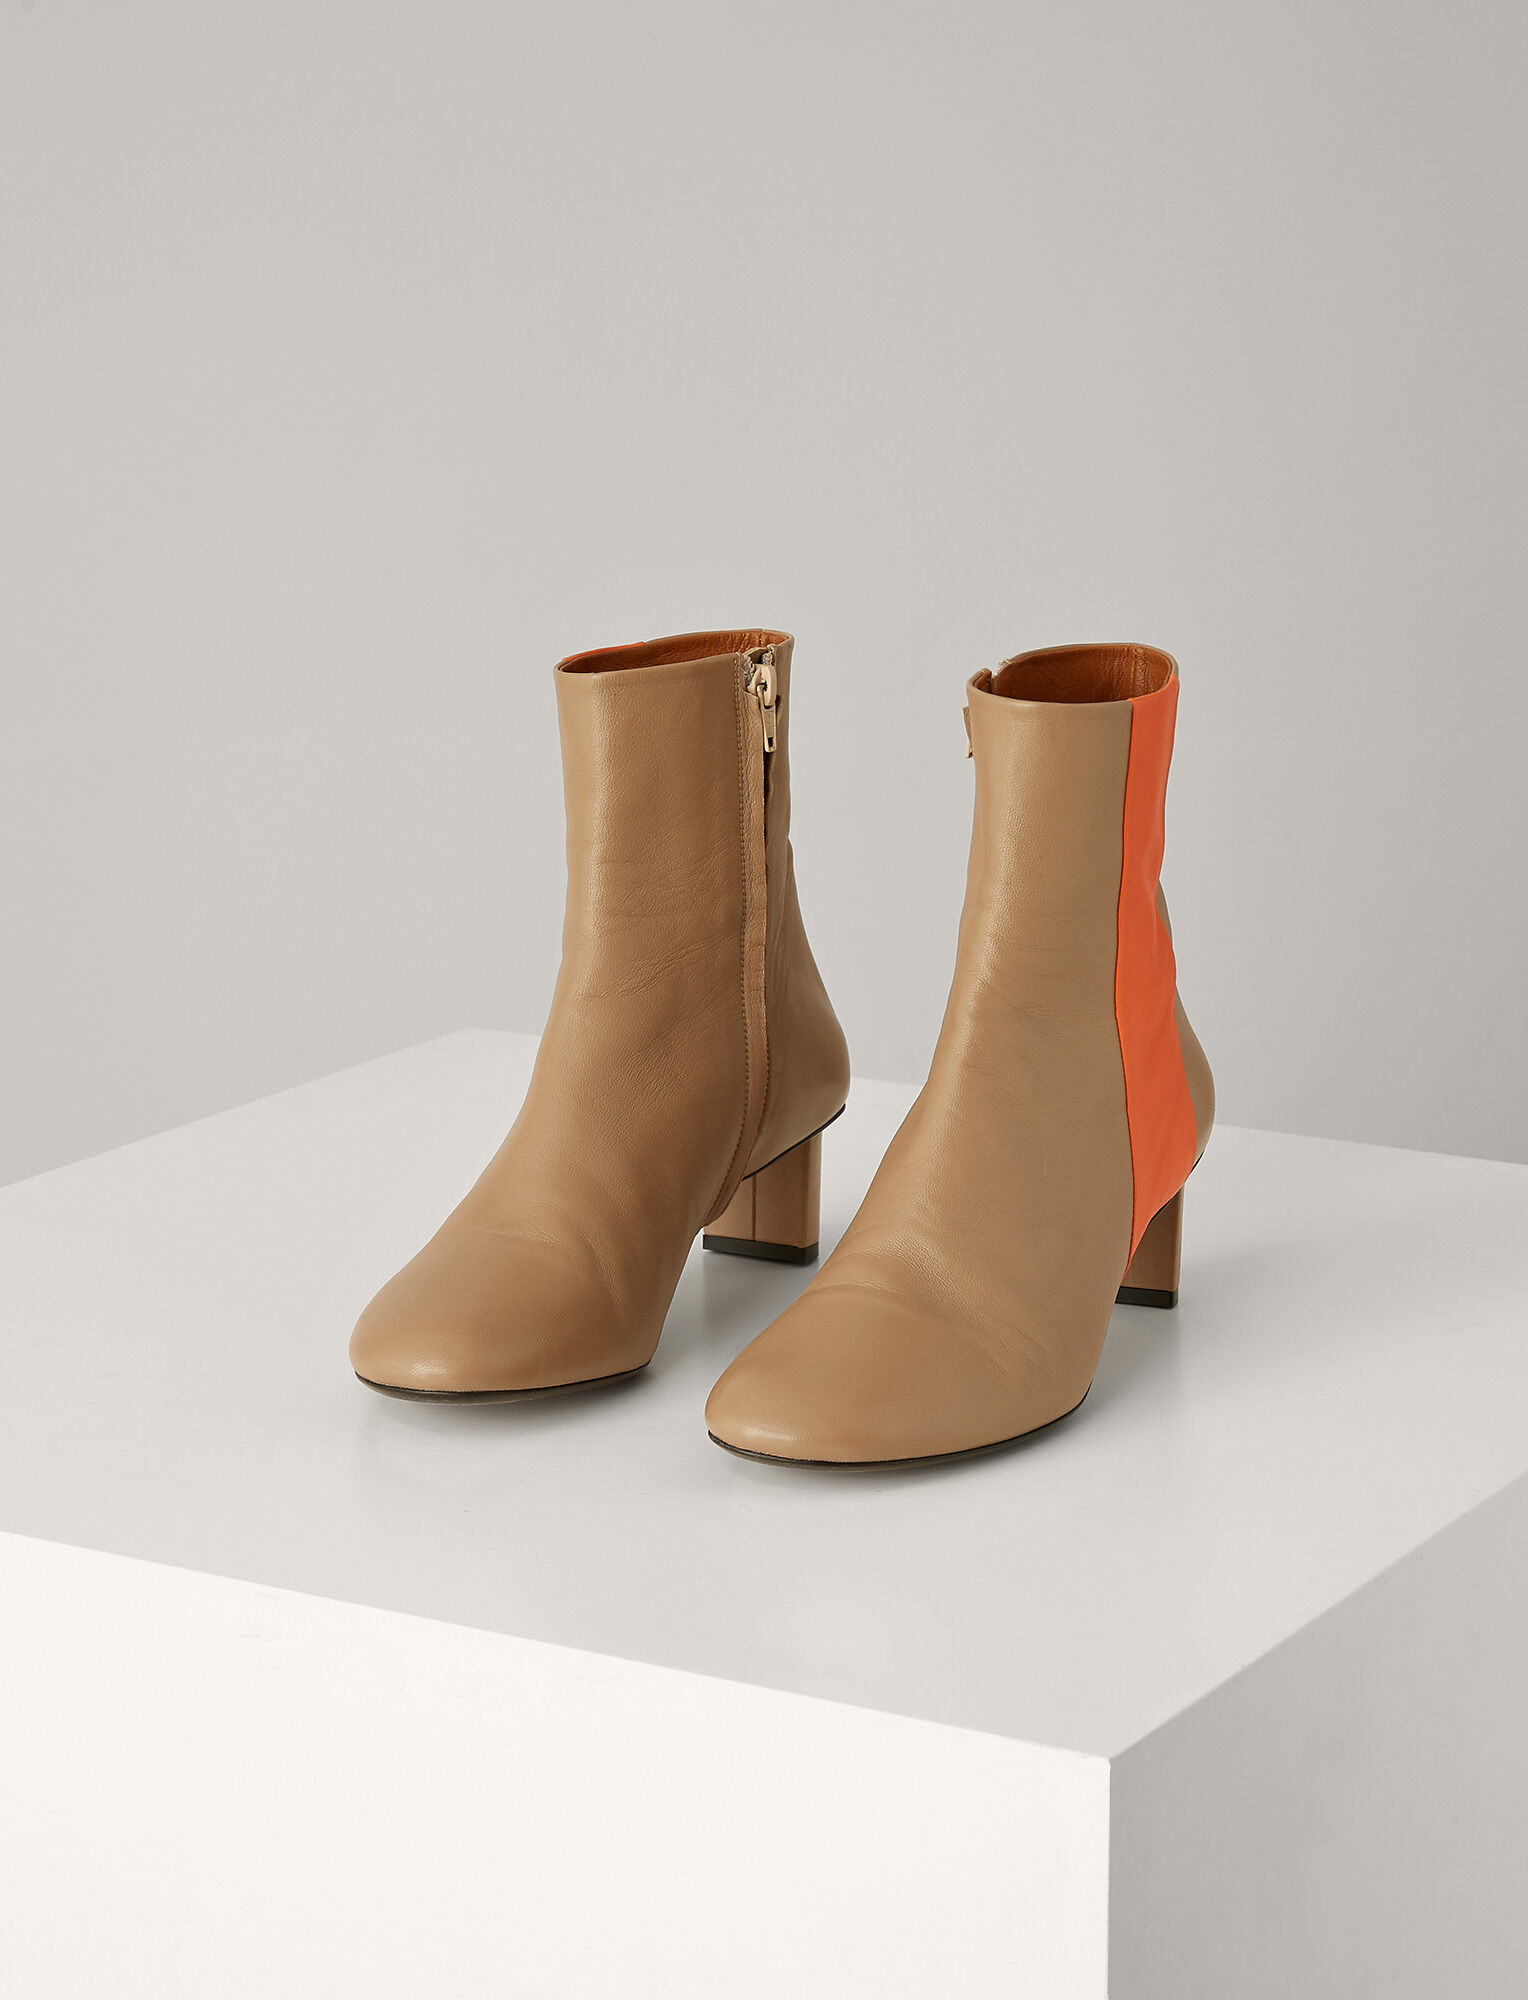 Joseph, Avenue Leather Super Boot, in TAN